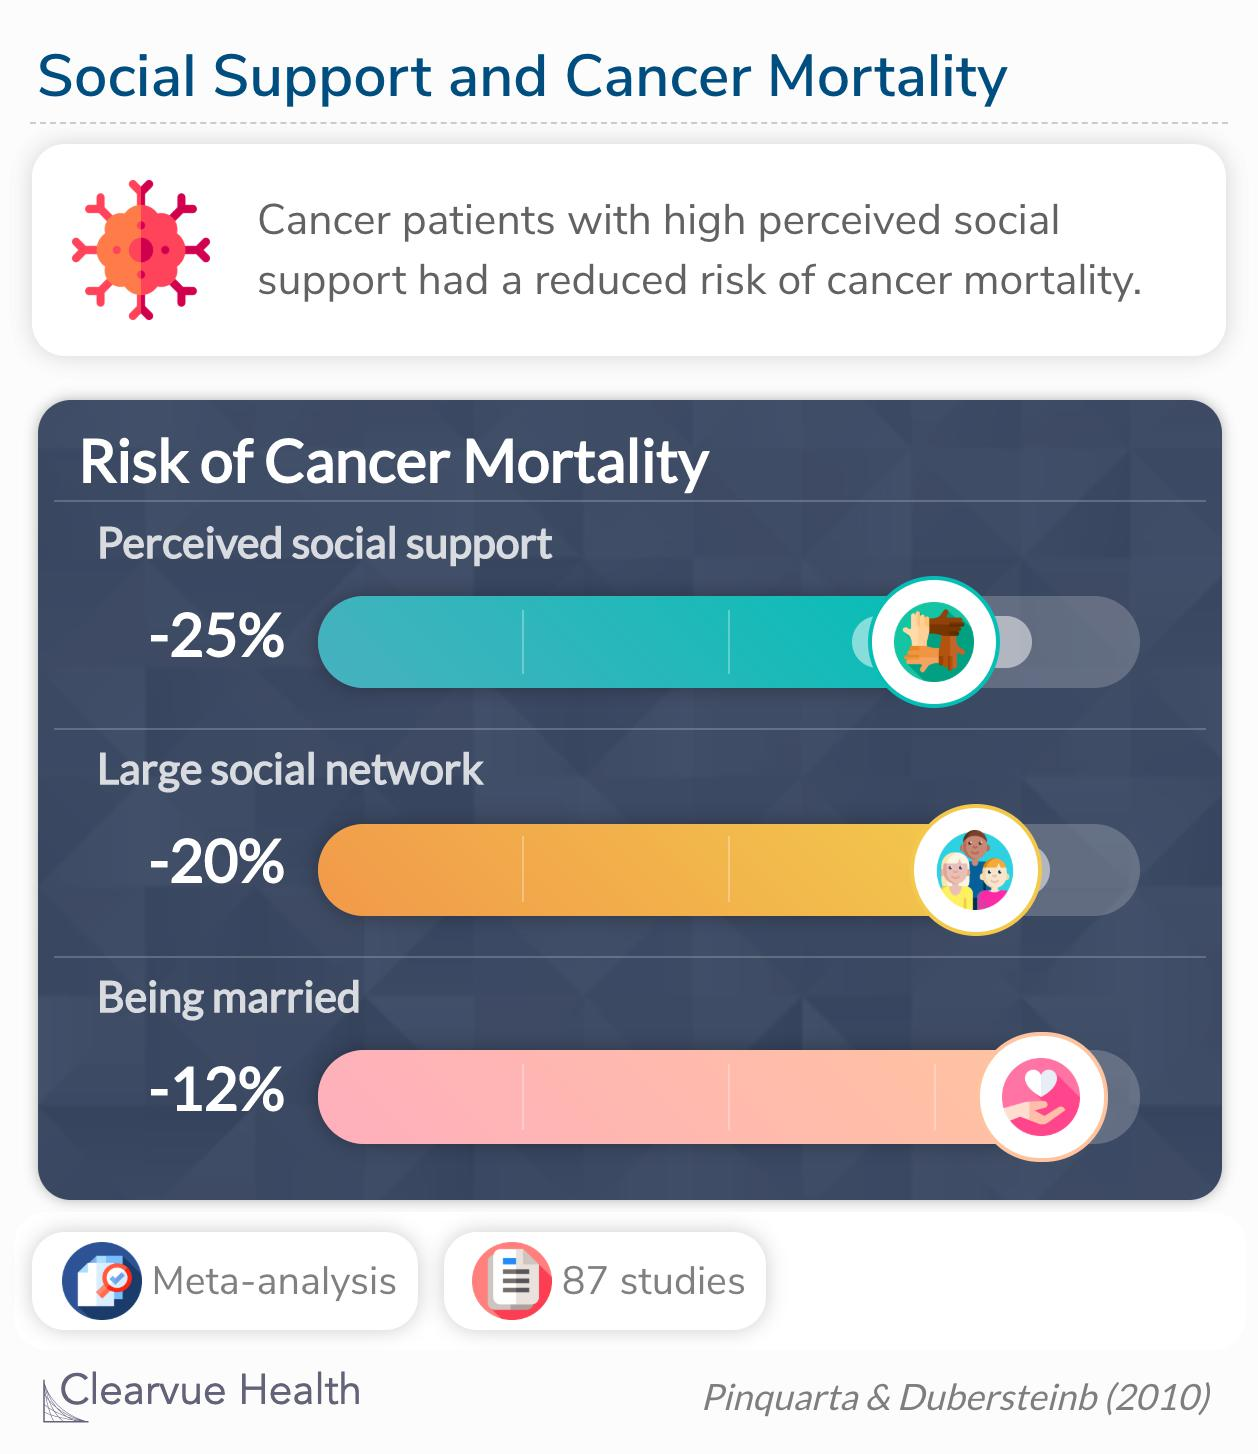 In controlled studies, having high levels of perceived social support, larger social network, and being married were associated with decreases in the risk of mortality.